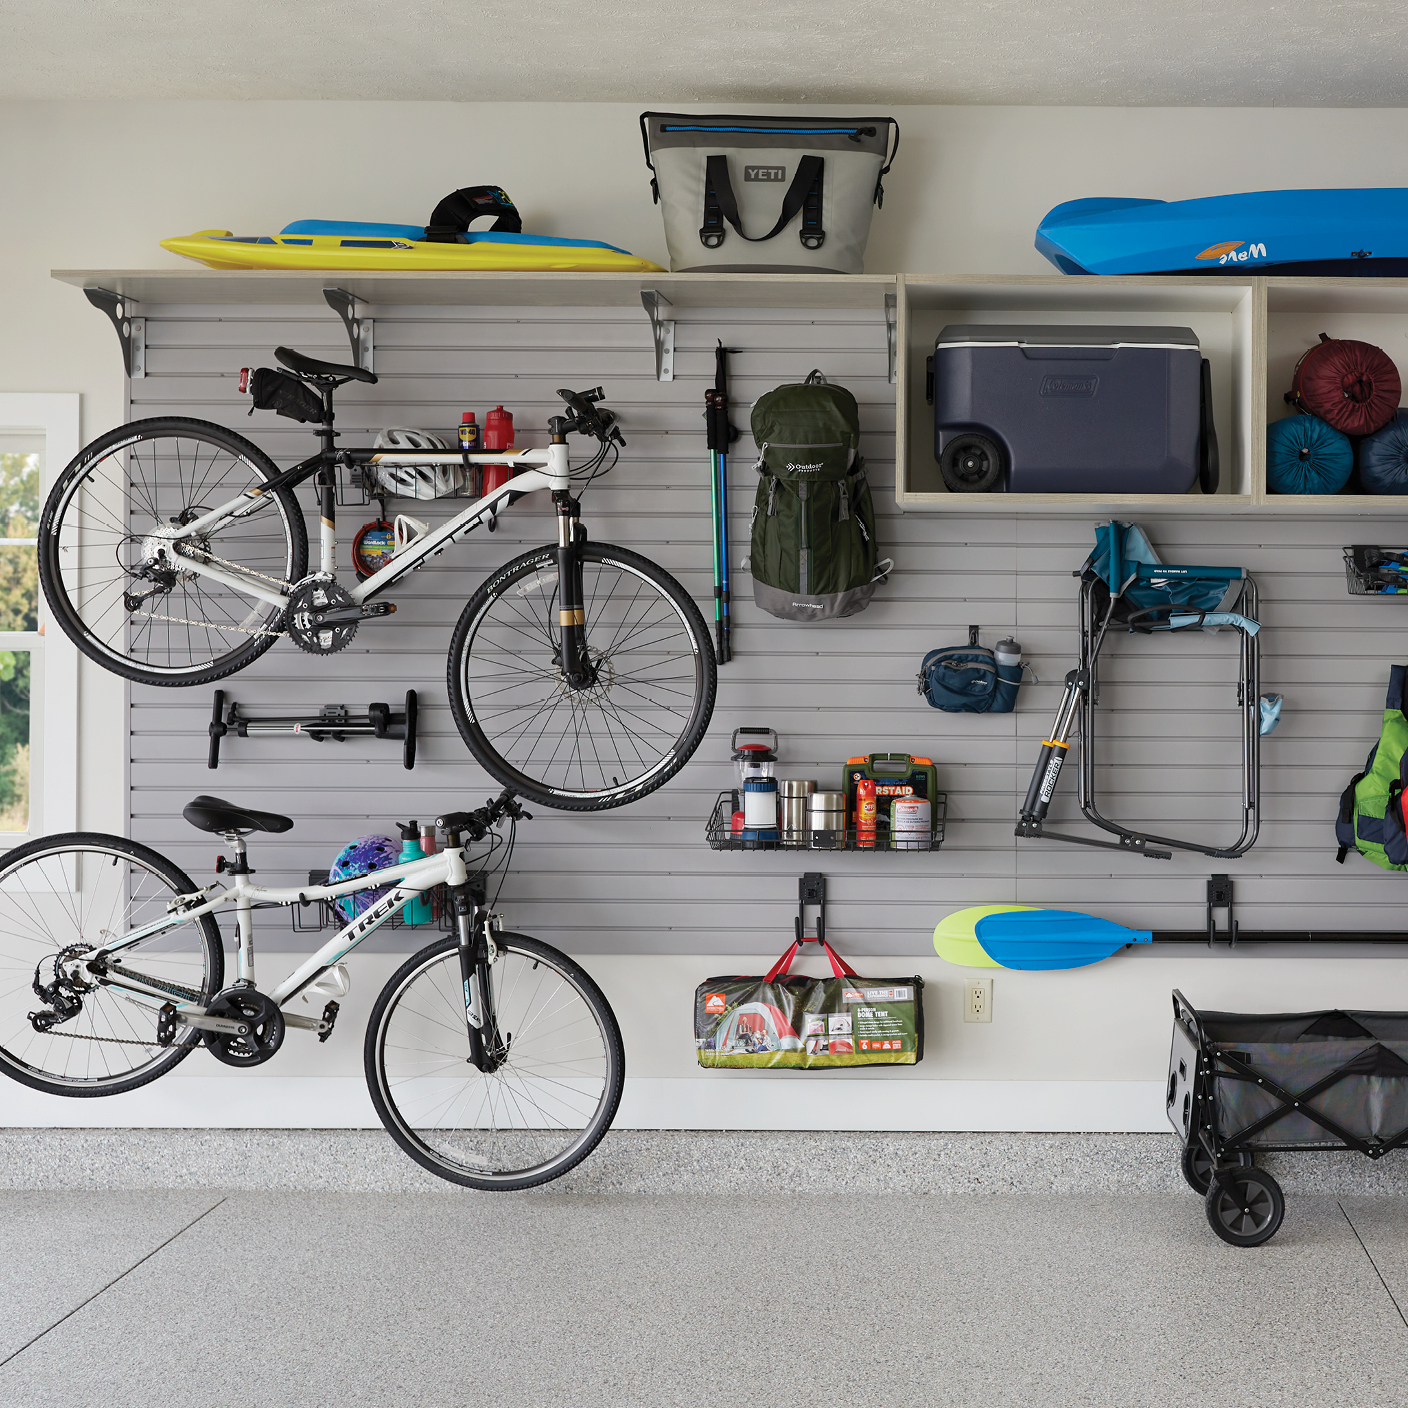 Garage slatwall and cubie storage for sporting equipment by Inspired Closets